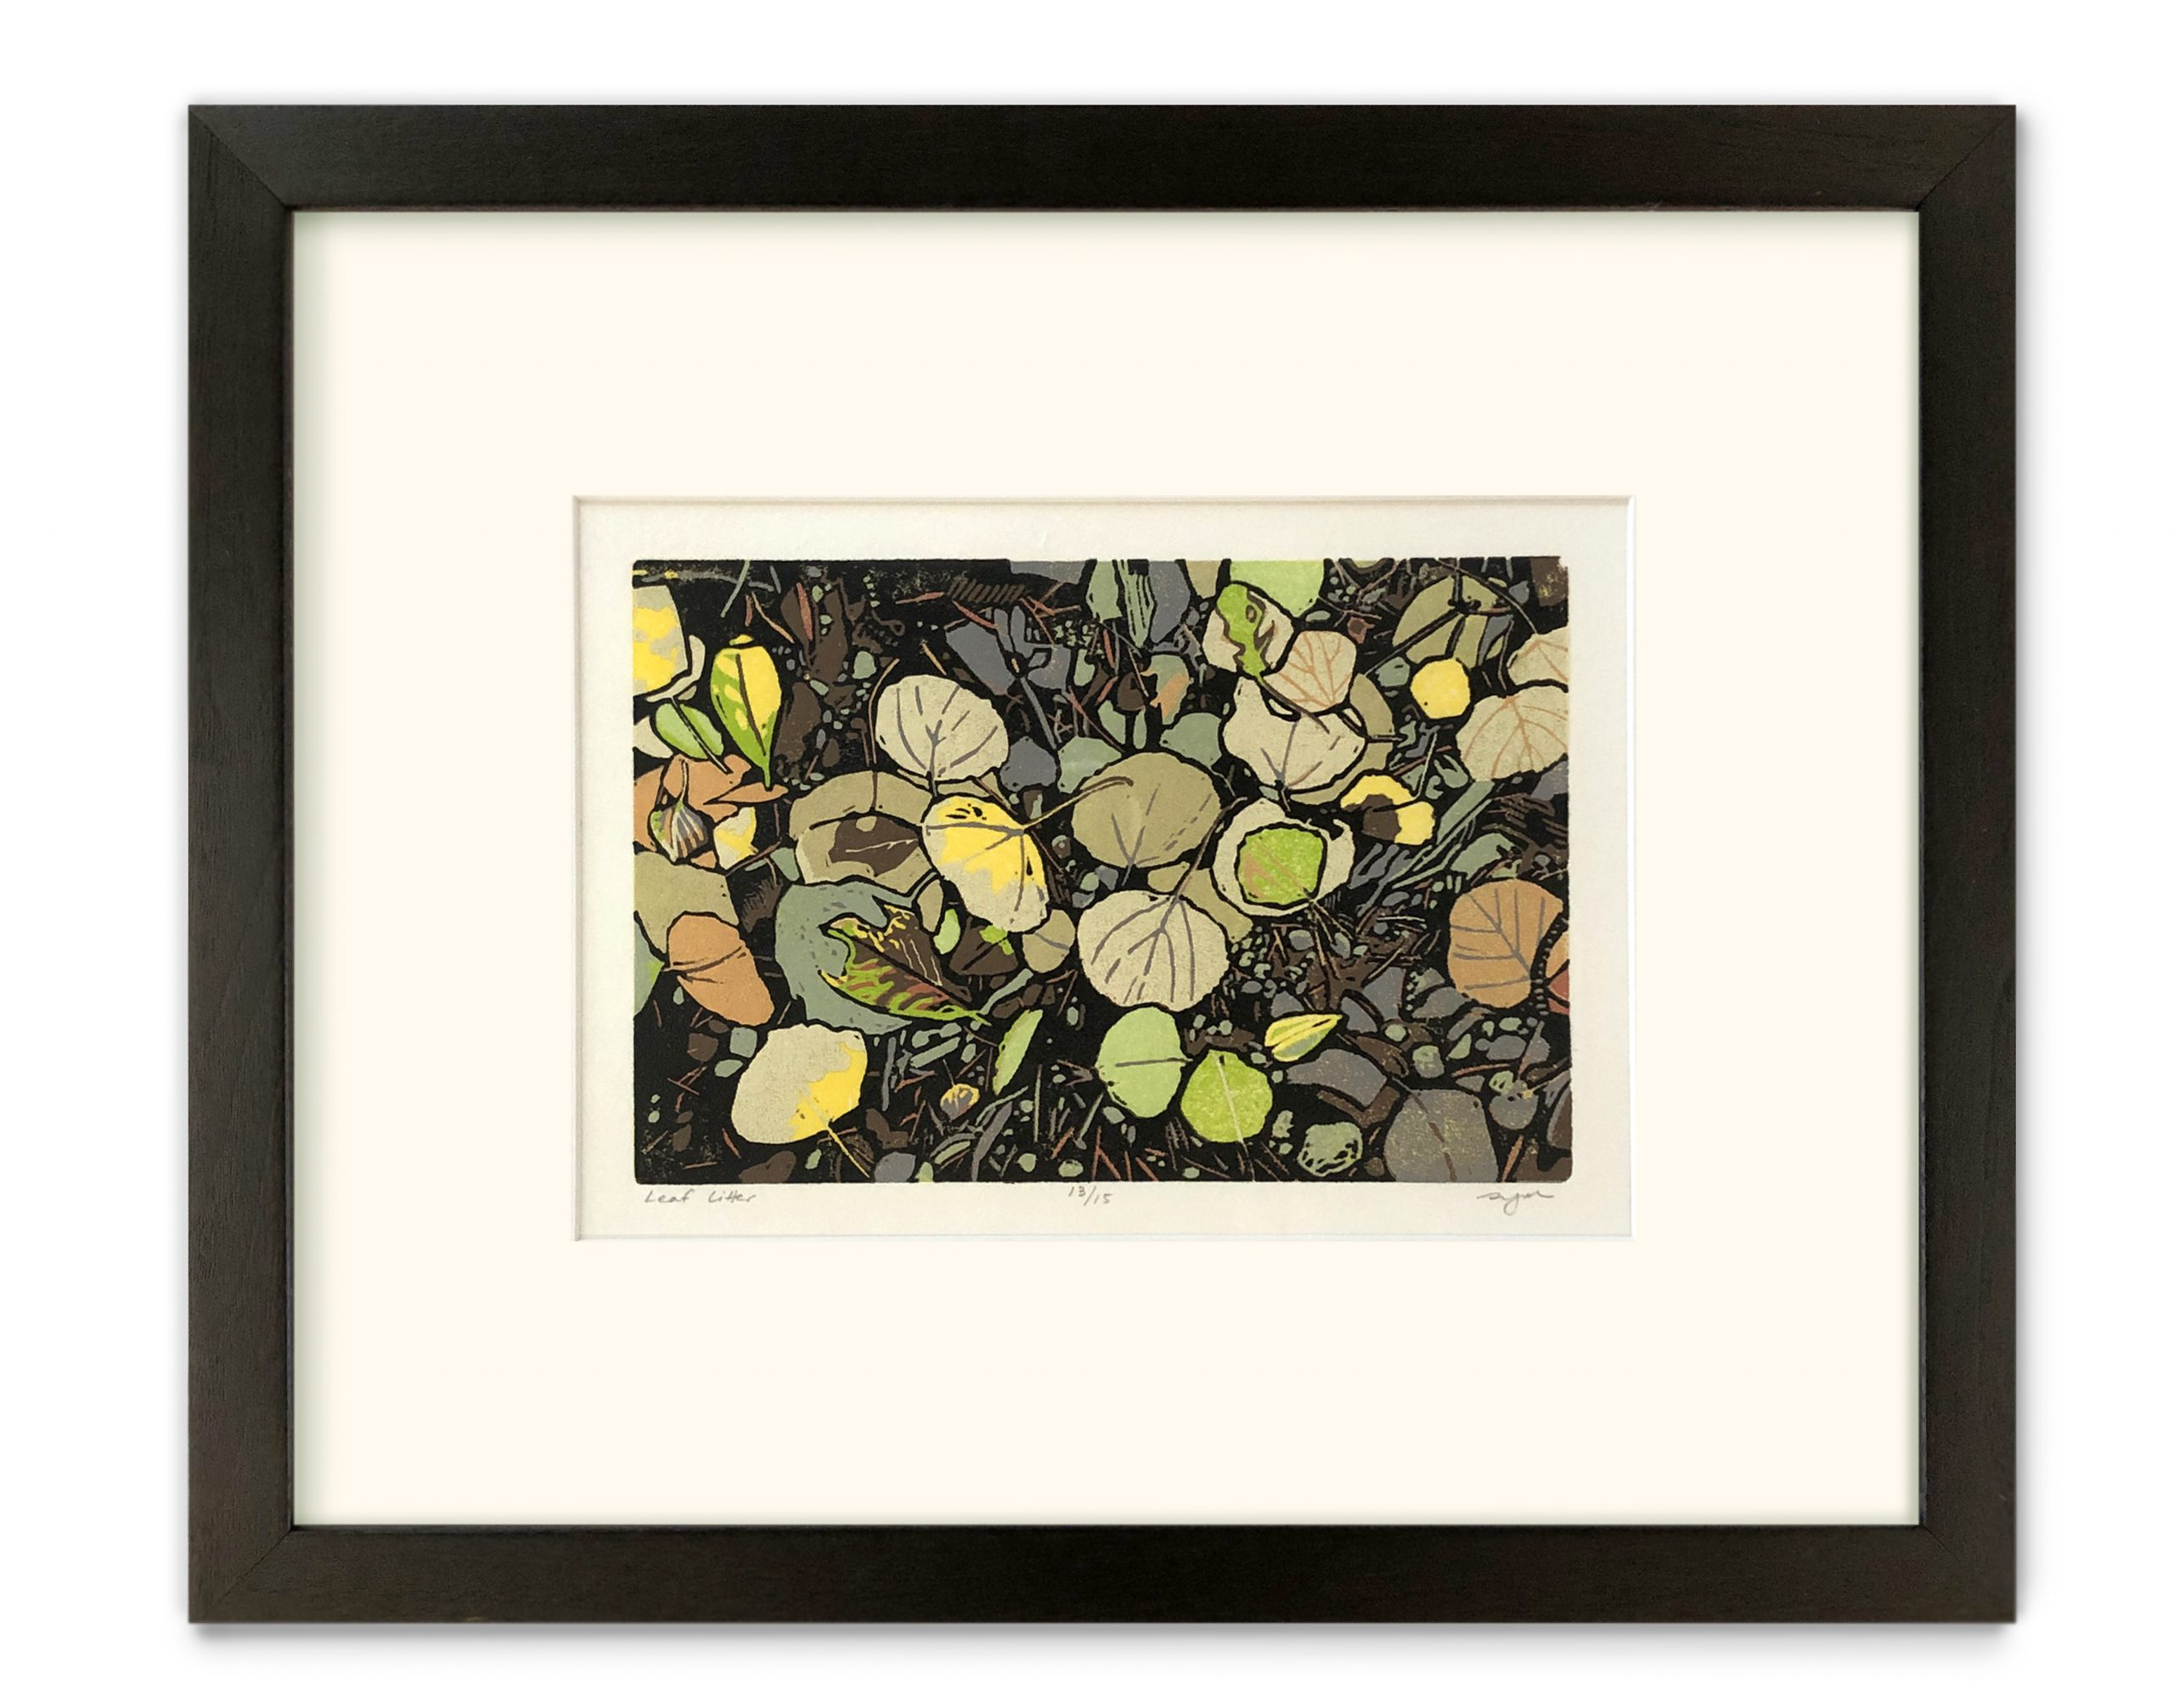 Sherrie York - Leaf Litter